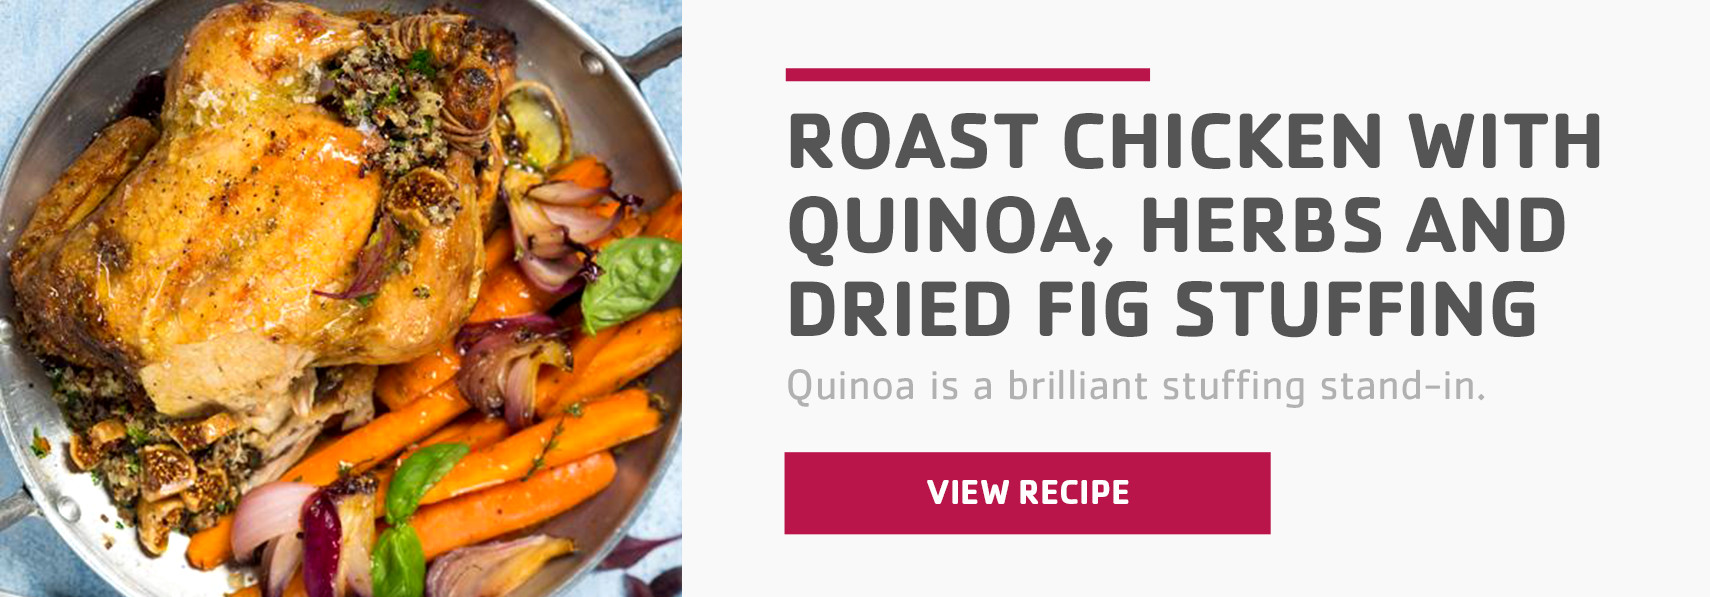 Roast chicken with quinoa recipe listing page banner.jpg